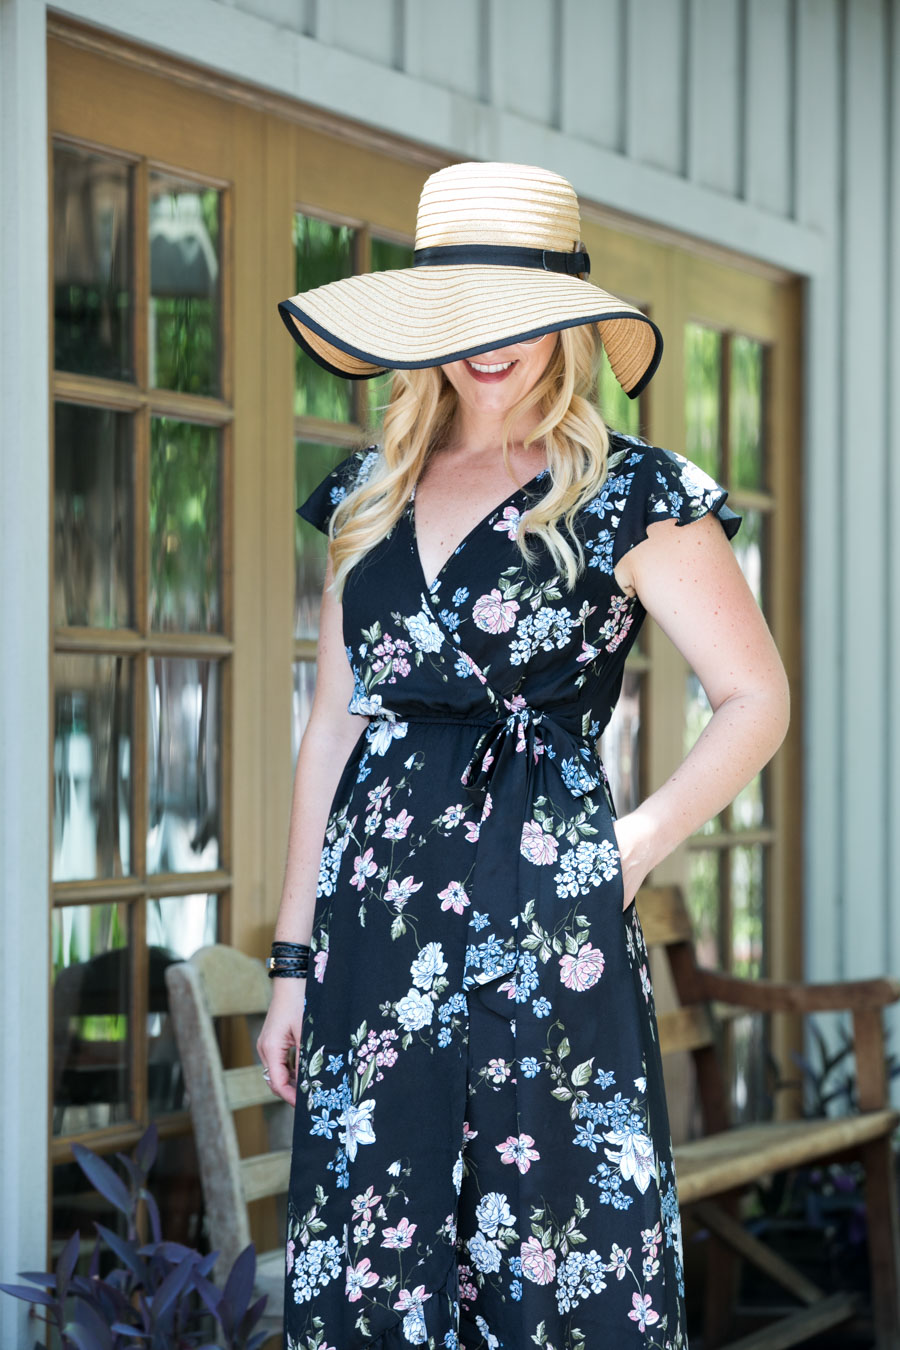 Black Floral Maxi Wrap Dress + Floppy Hat Outfit 035899ad6d5c